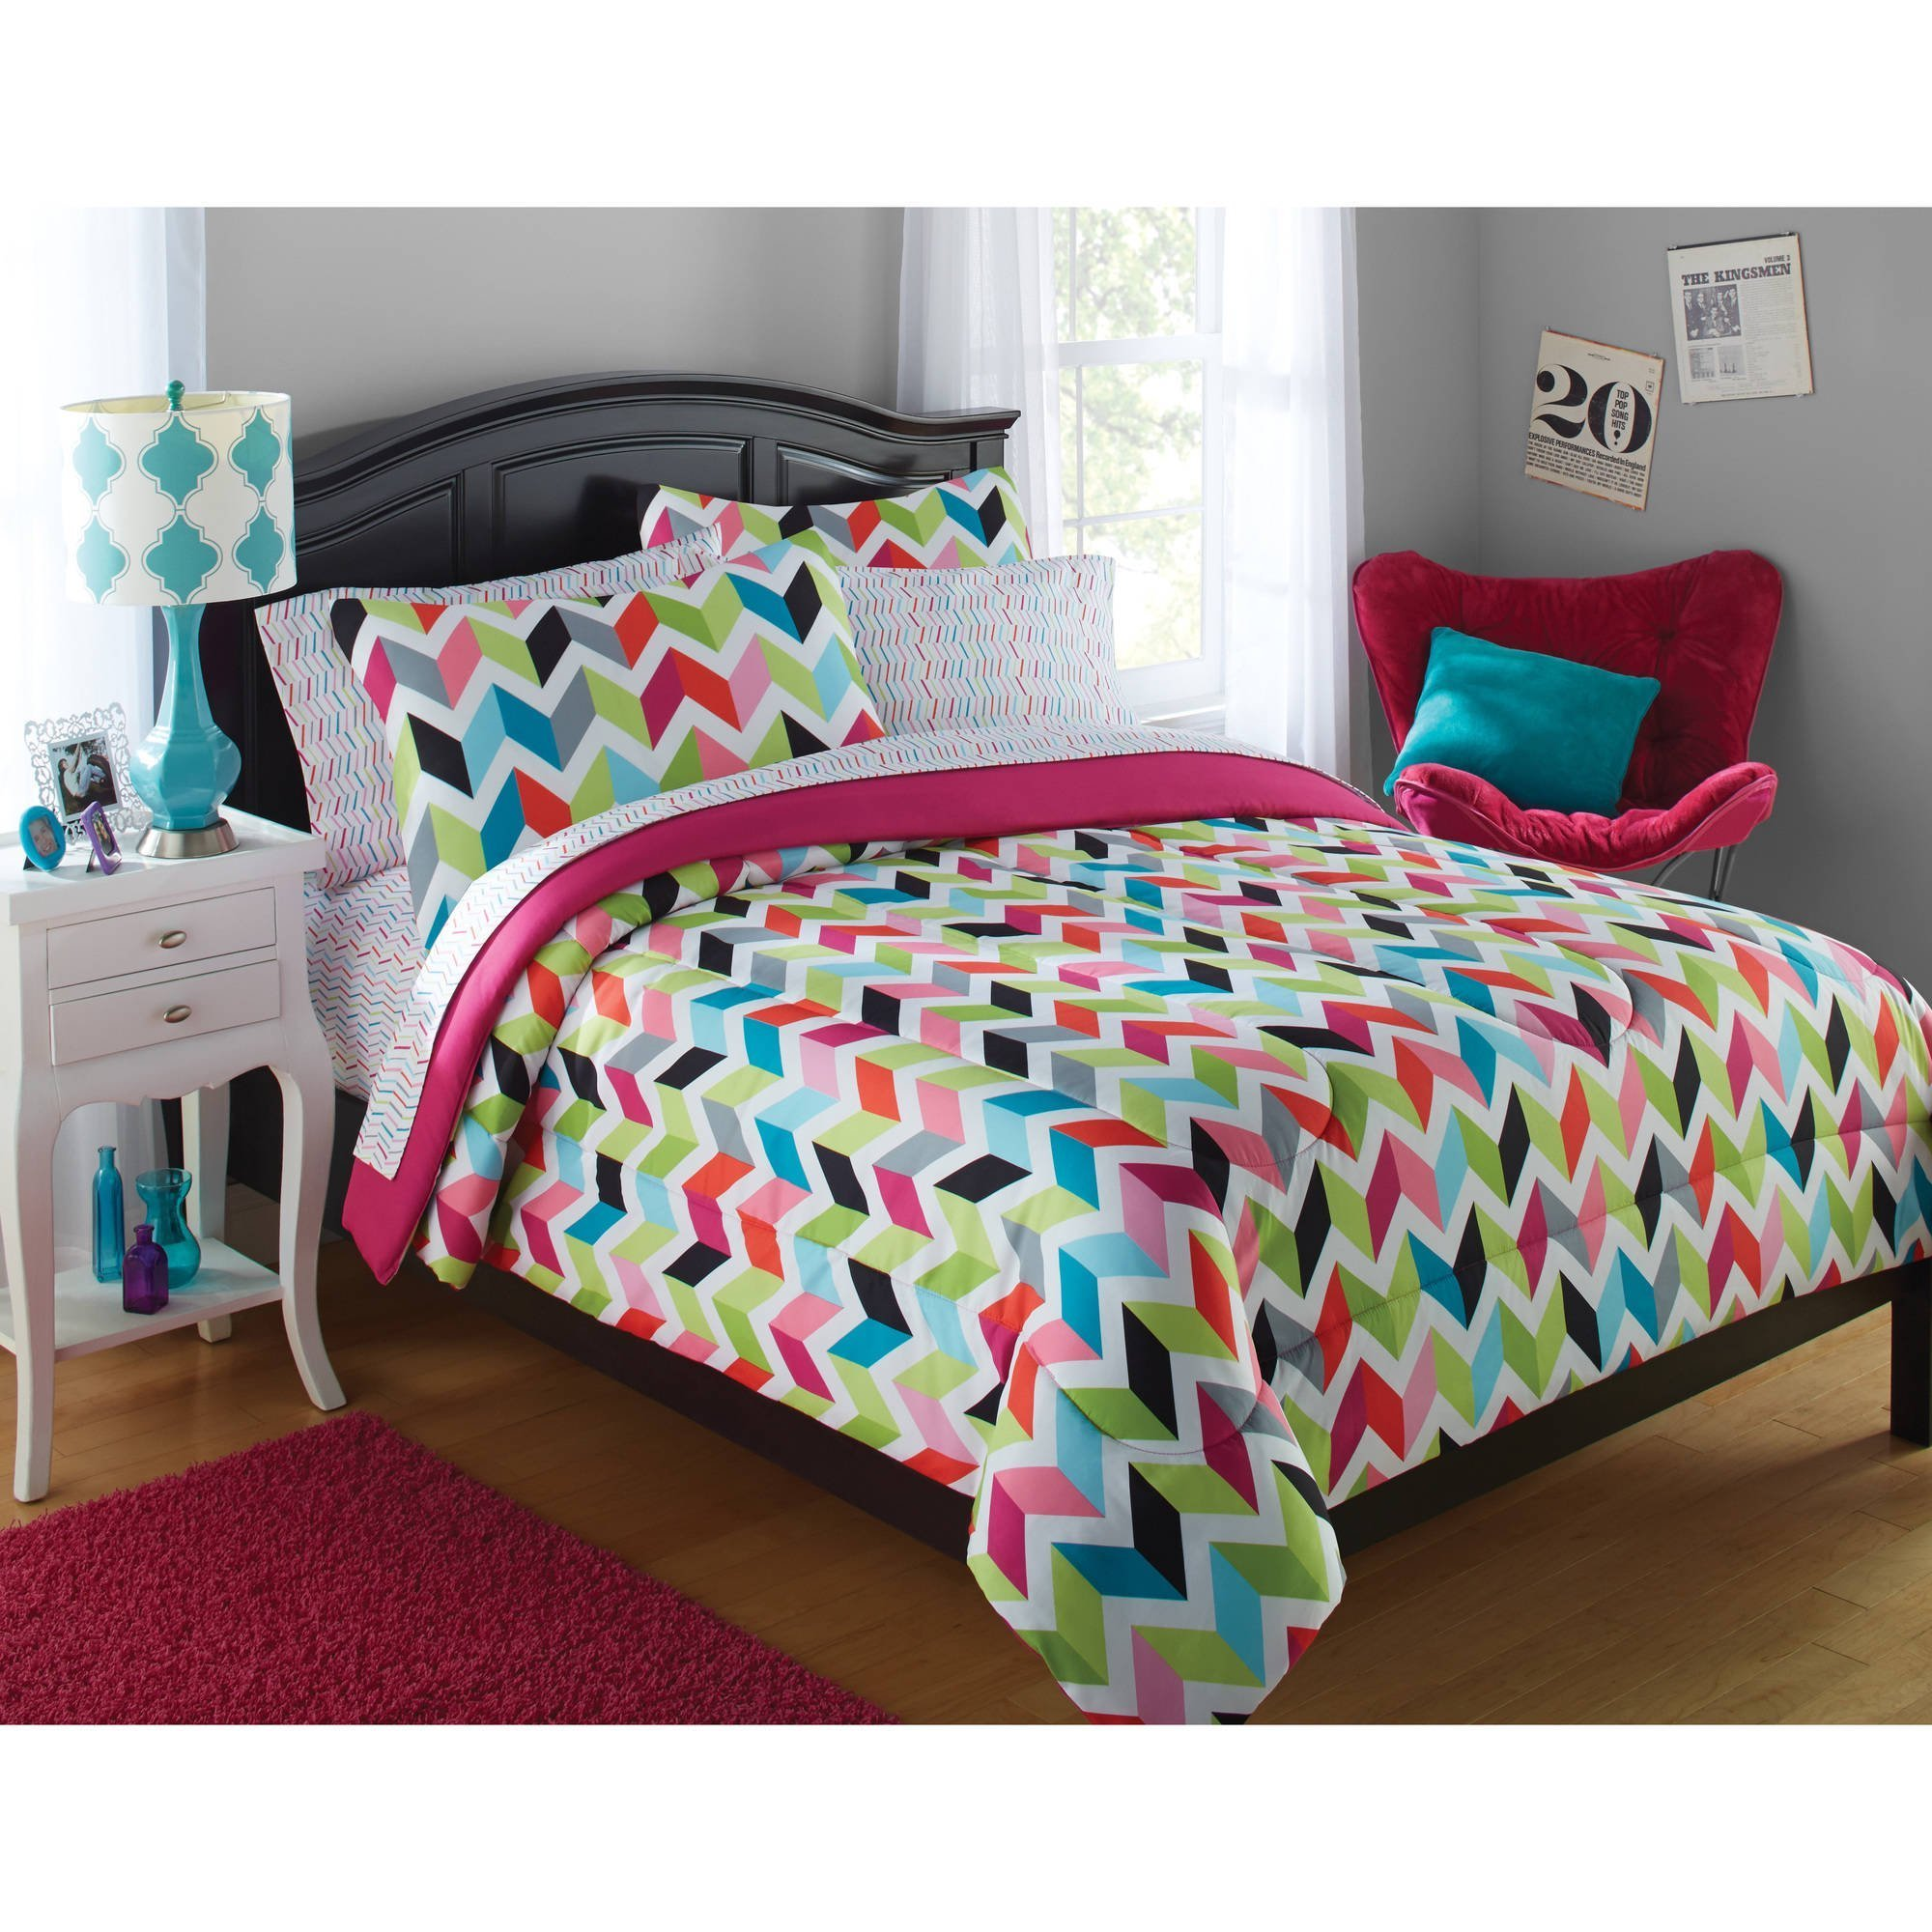 Best Your Zone Tribal Bedding Comforter Set Walmart Com With Pictures